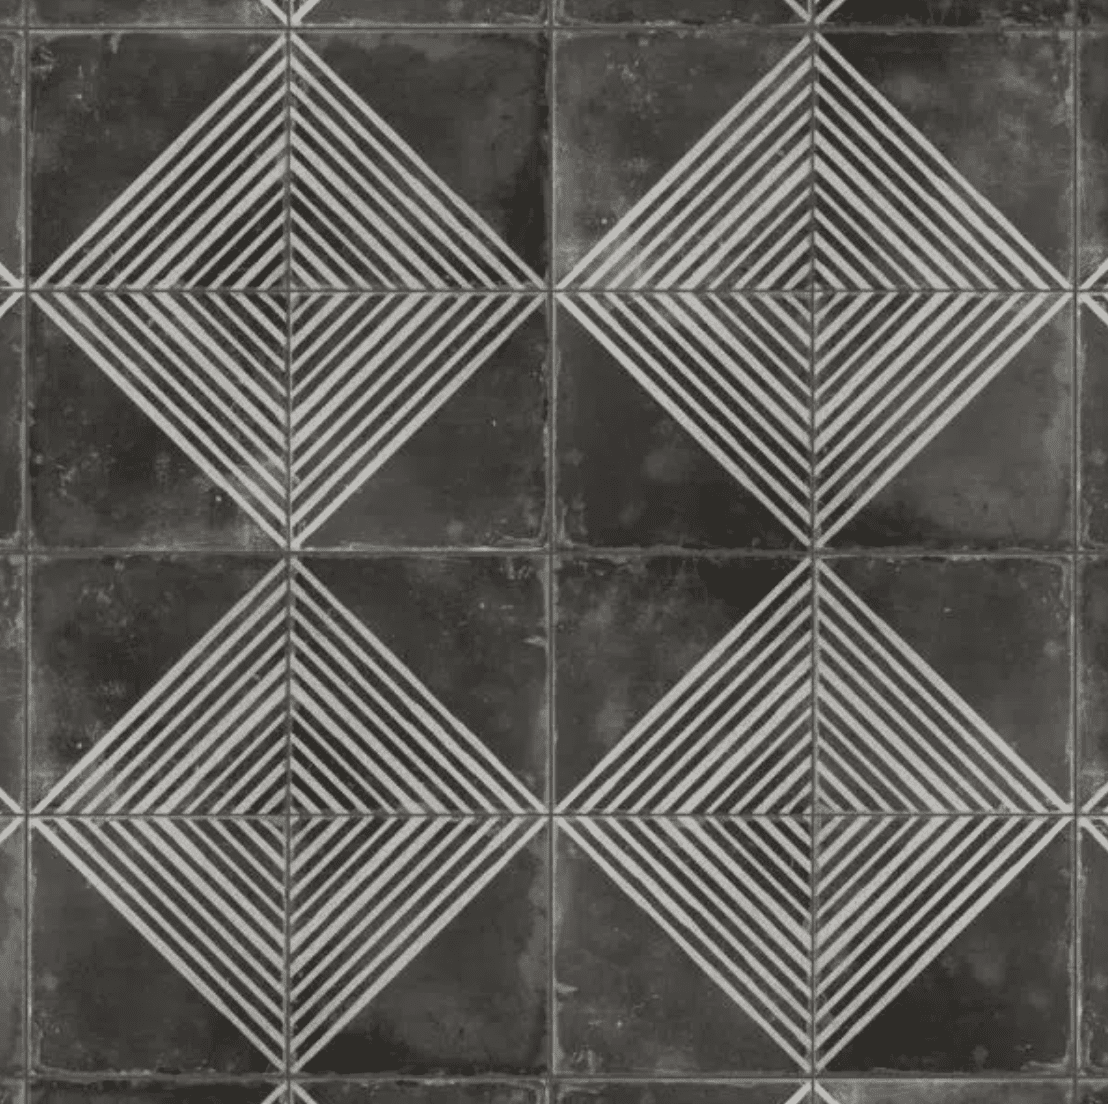 A series of printed tiles you can buy at Home Depot